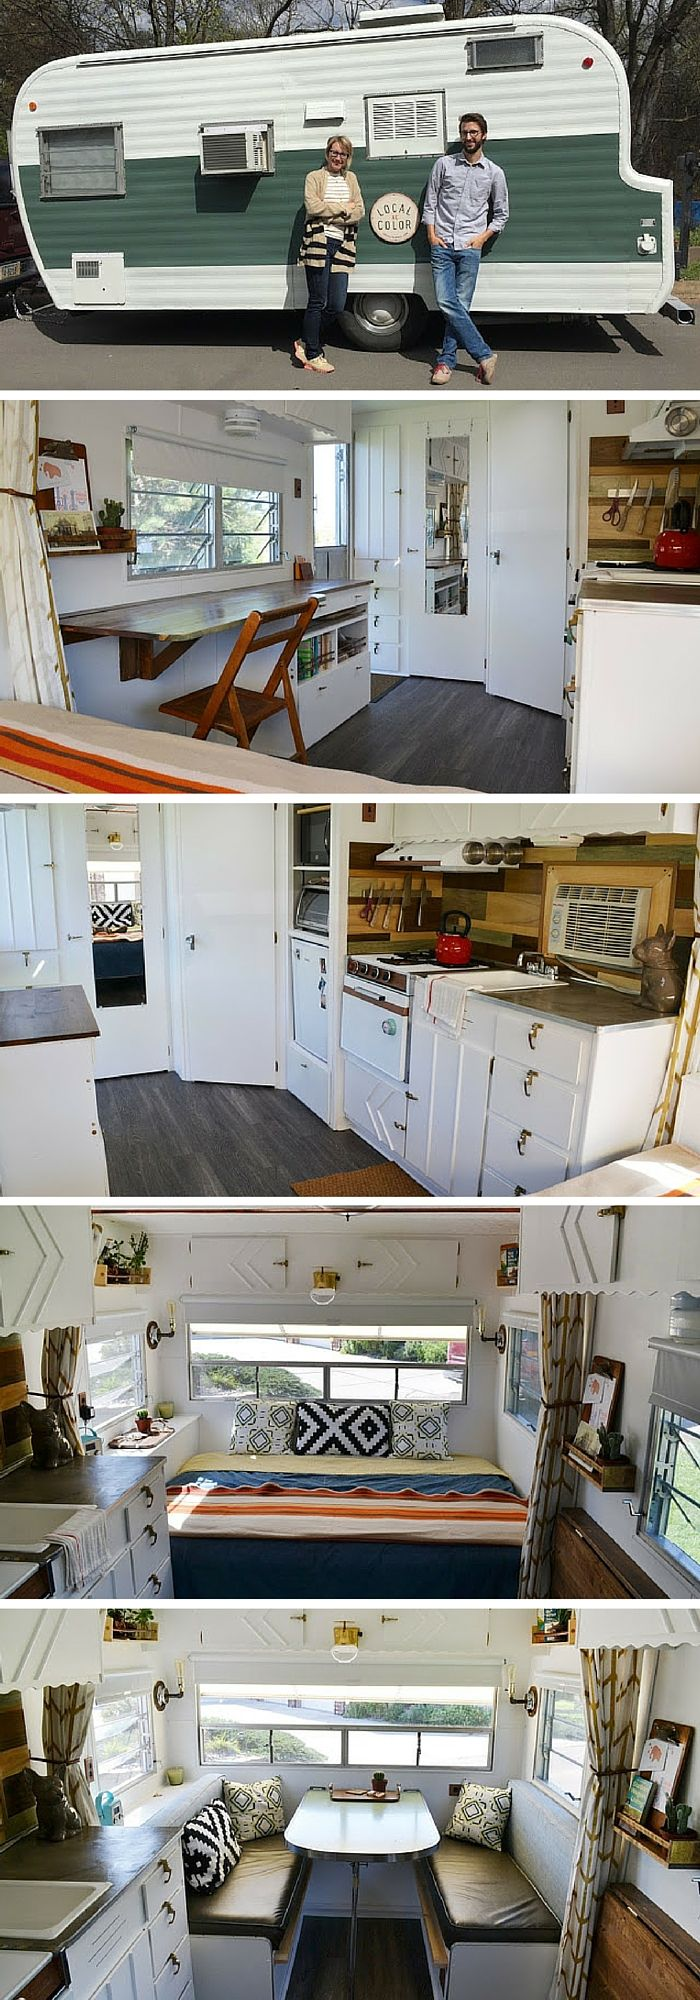 best 25 home trailer ideas on pinterest tiny home trailer tiny